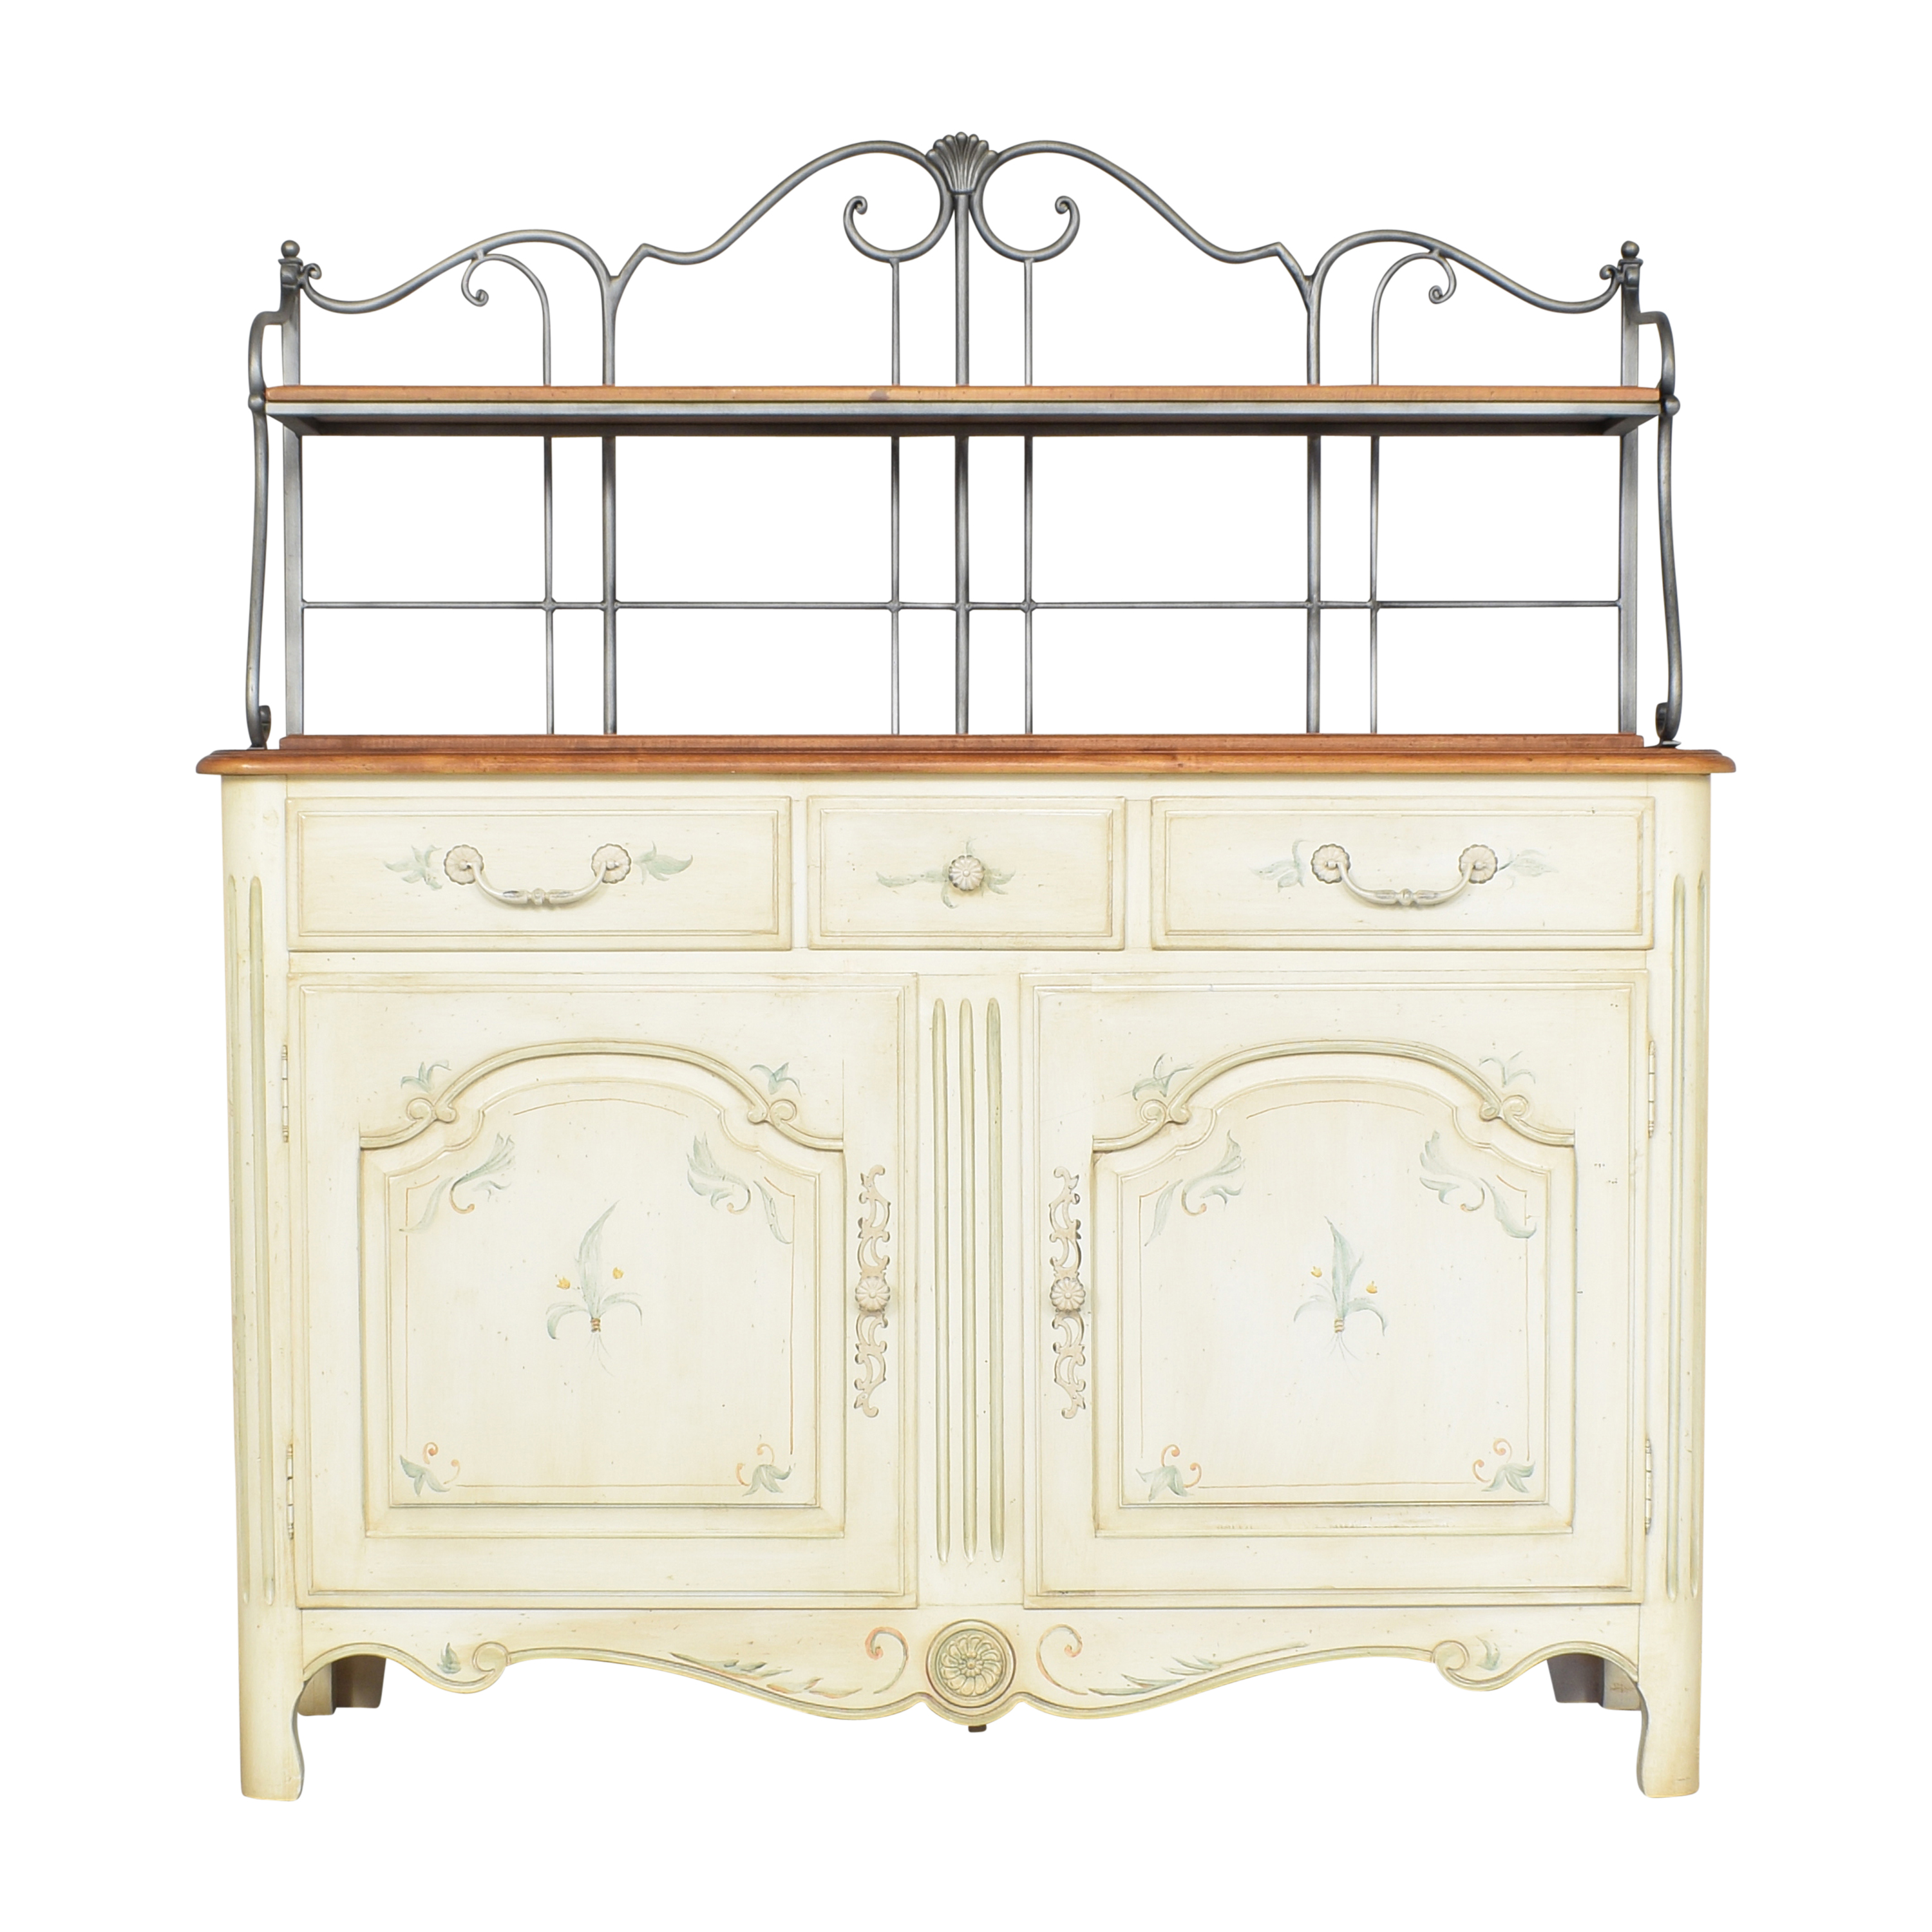 shop Ethan Allen Legacy French Country Baker's Rack Ethan Allen Cabinets & Sideboards